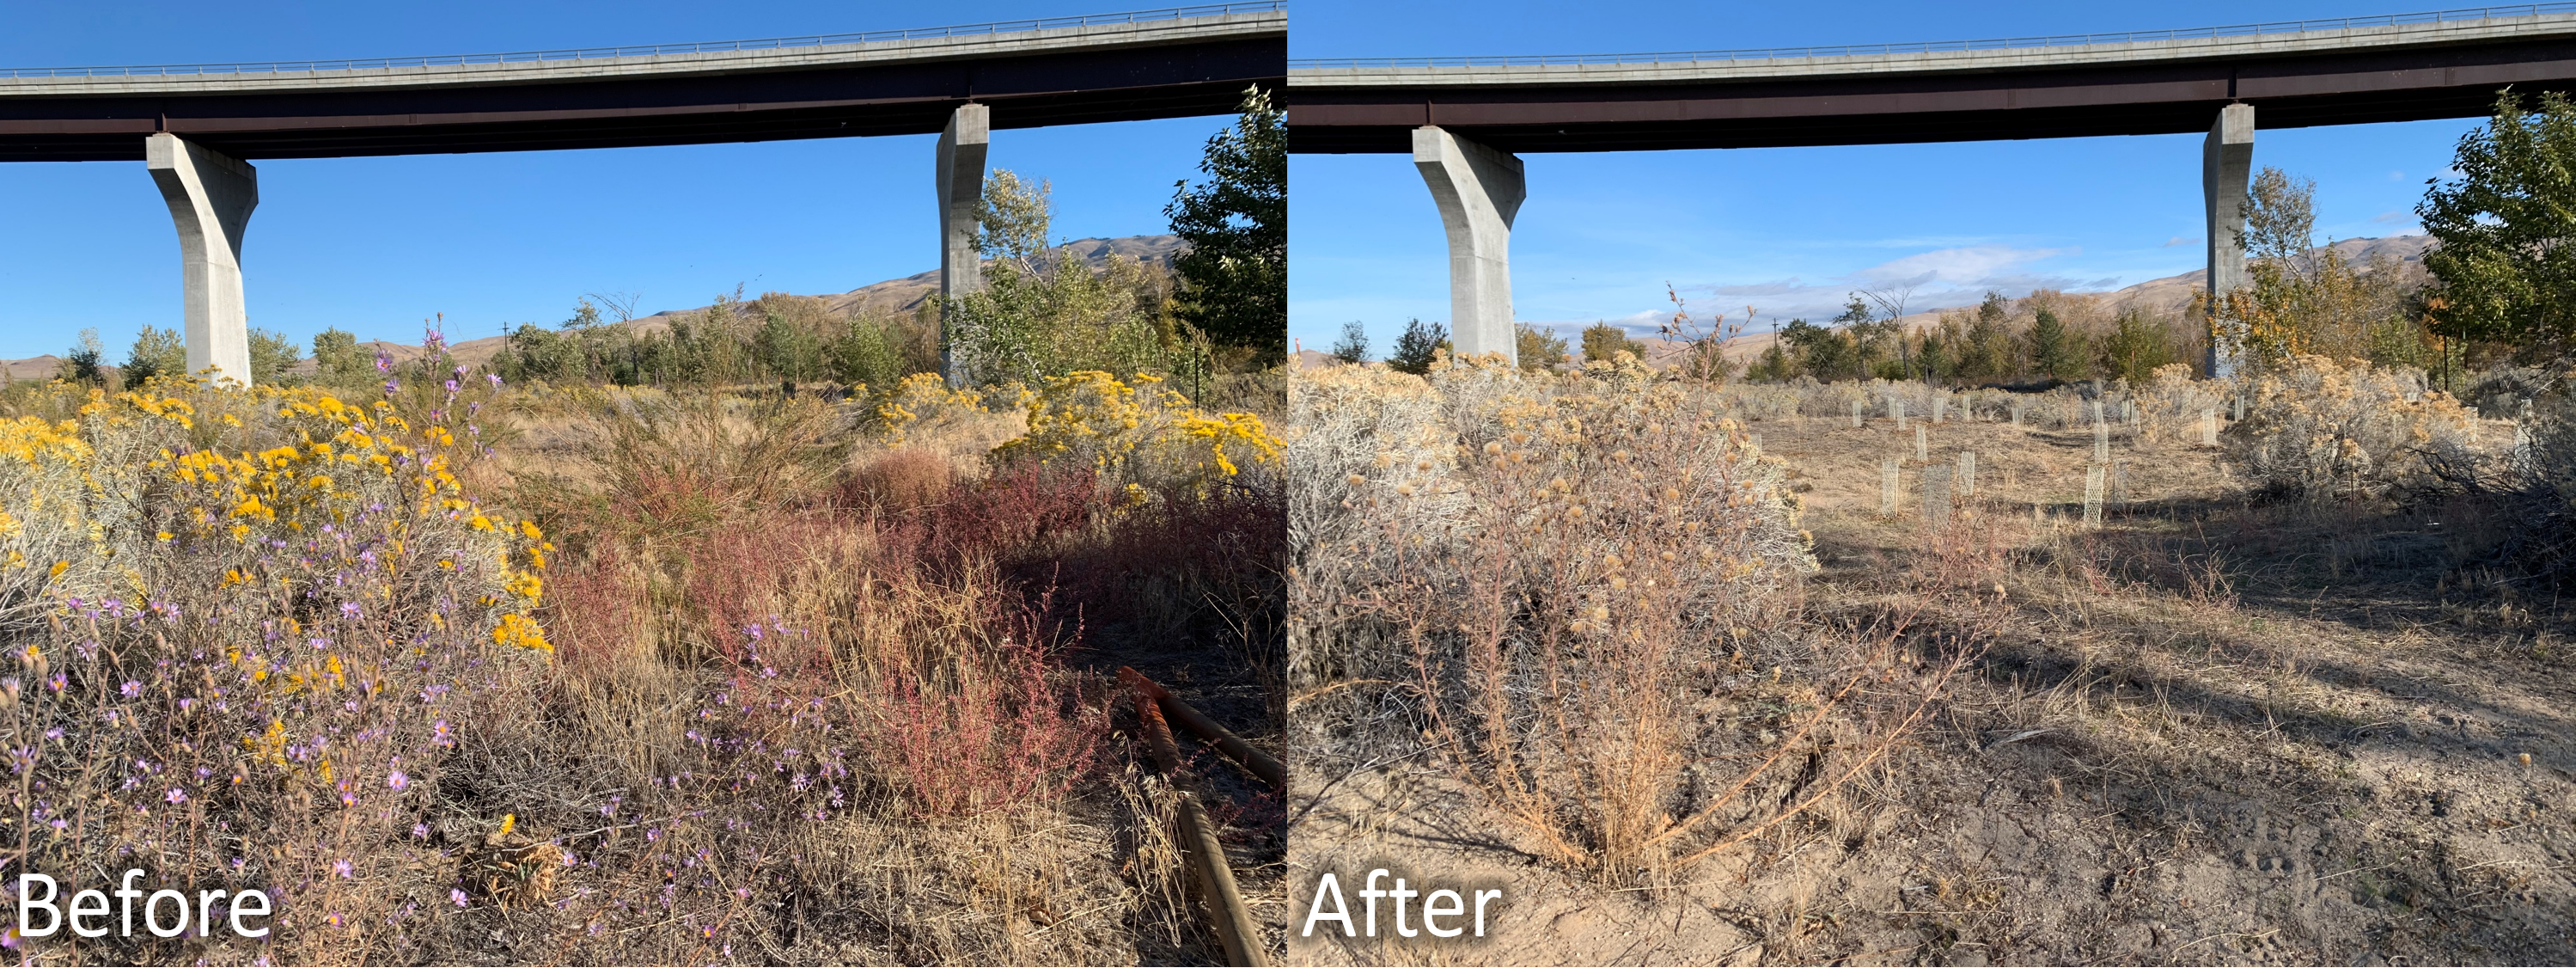 "the ""before"" image shows an area cluttered with weeds, but surrounded by blooming rabbitbrush (yellow) and aster (purple). The after image shows the same view, but the weeds are cleared out and small mesh cages surround newly planted seedlings"